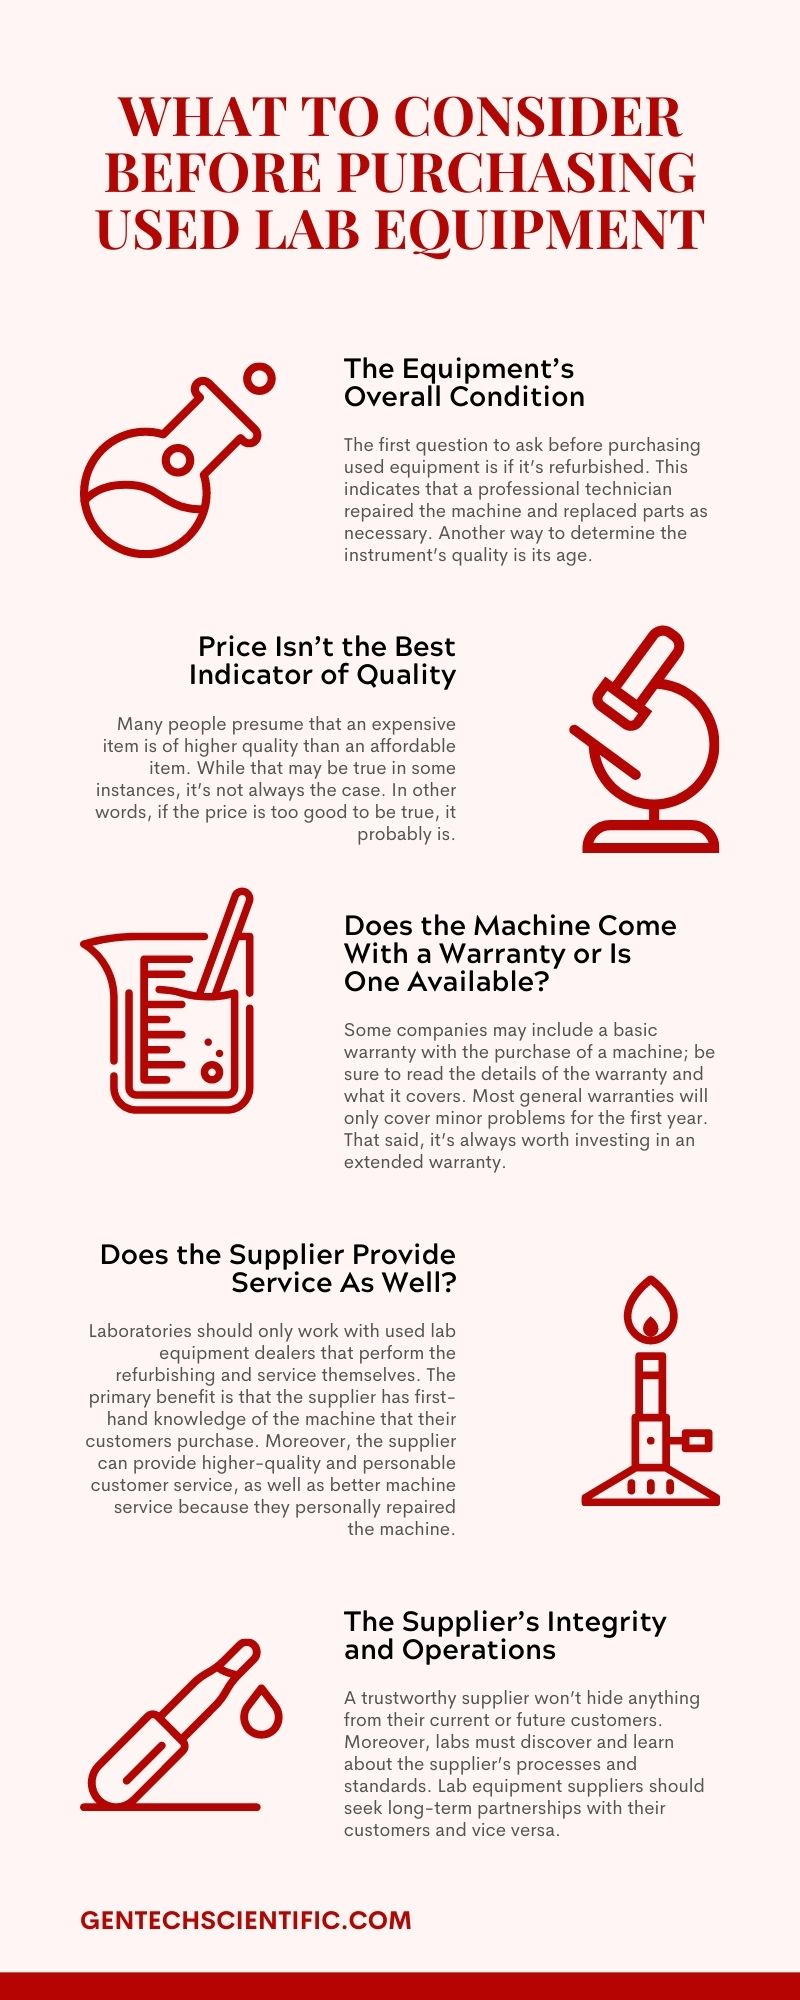 What To Consider Before Purchasing Used Lab Equipment